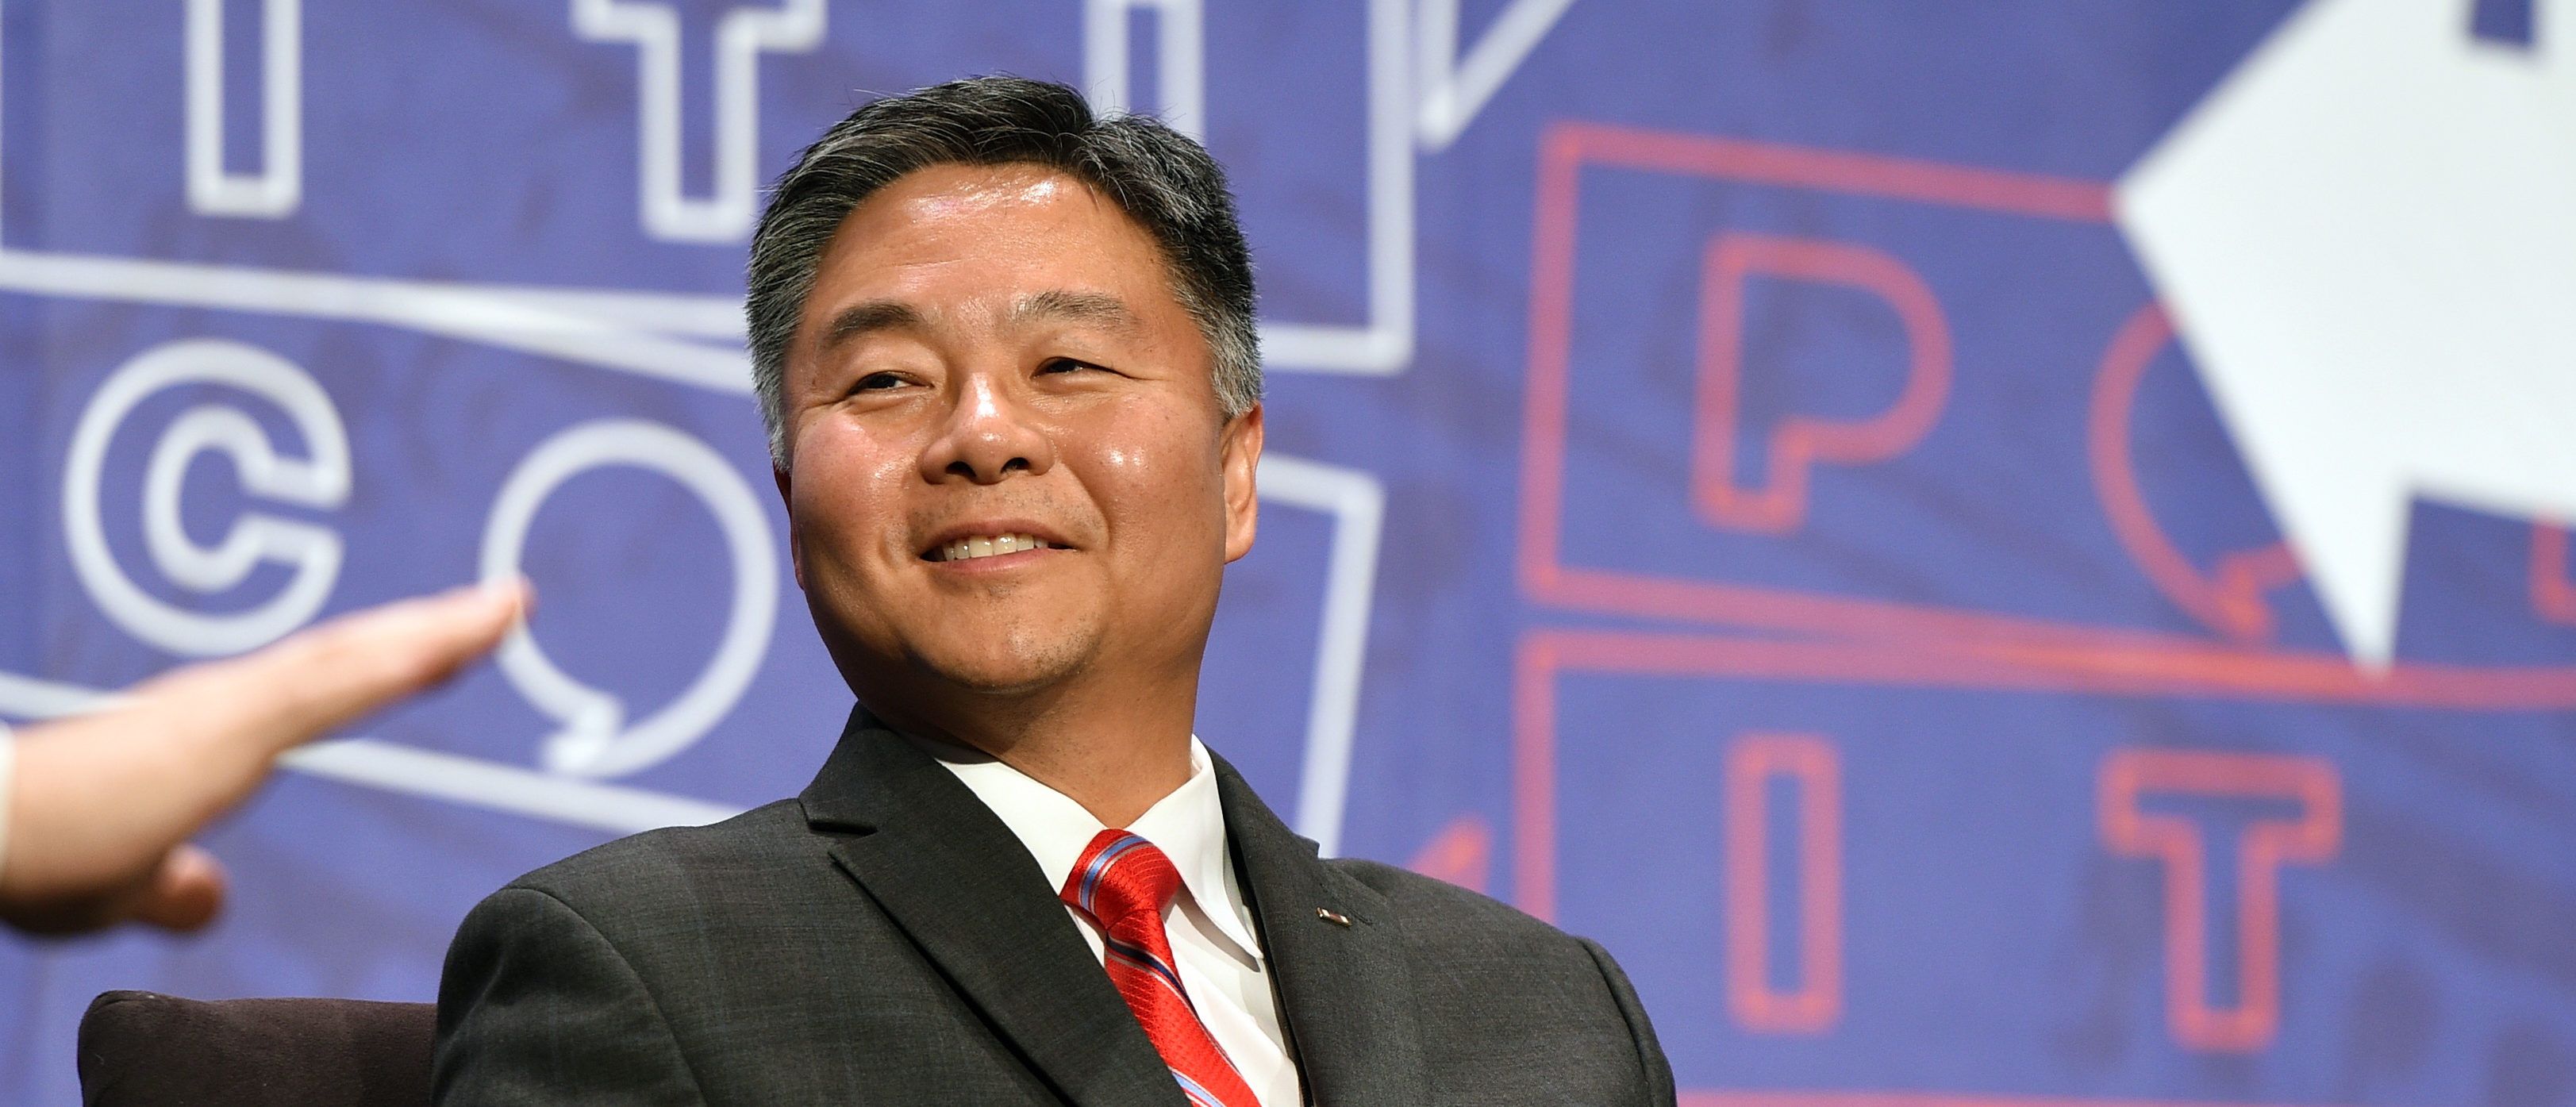 PASADENA, CA - JULY 30: Ted Lieu at the 'From Russia With Trump' panel during Politicon at Pasadena Convention Center on July 30, 2017 in Pasadena, California. (Photo by Joshua Blanchard/Getty Images for Politicon)